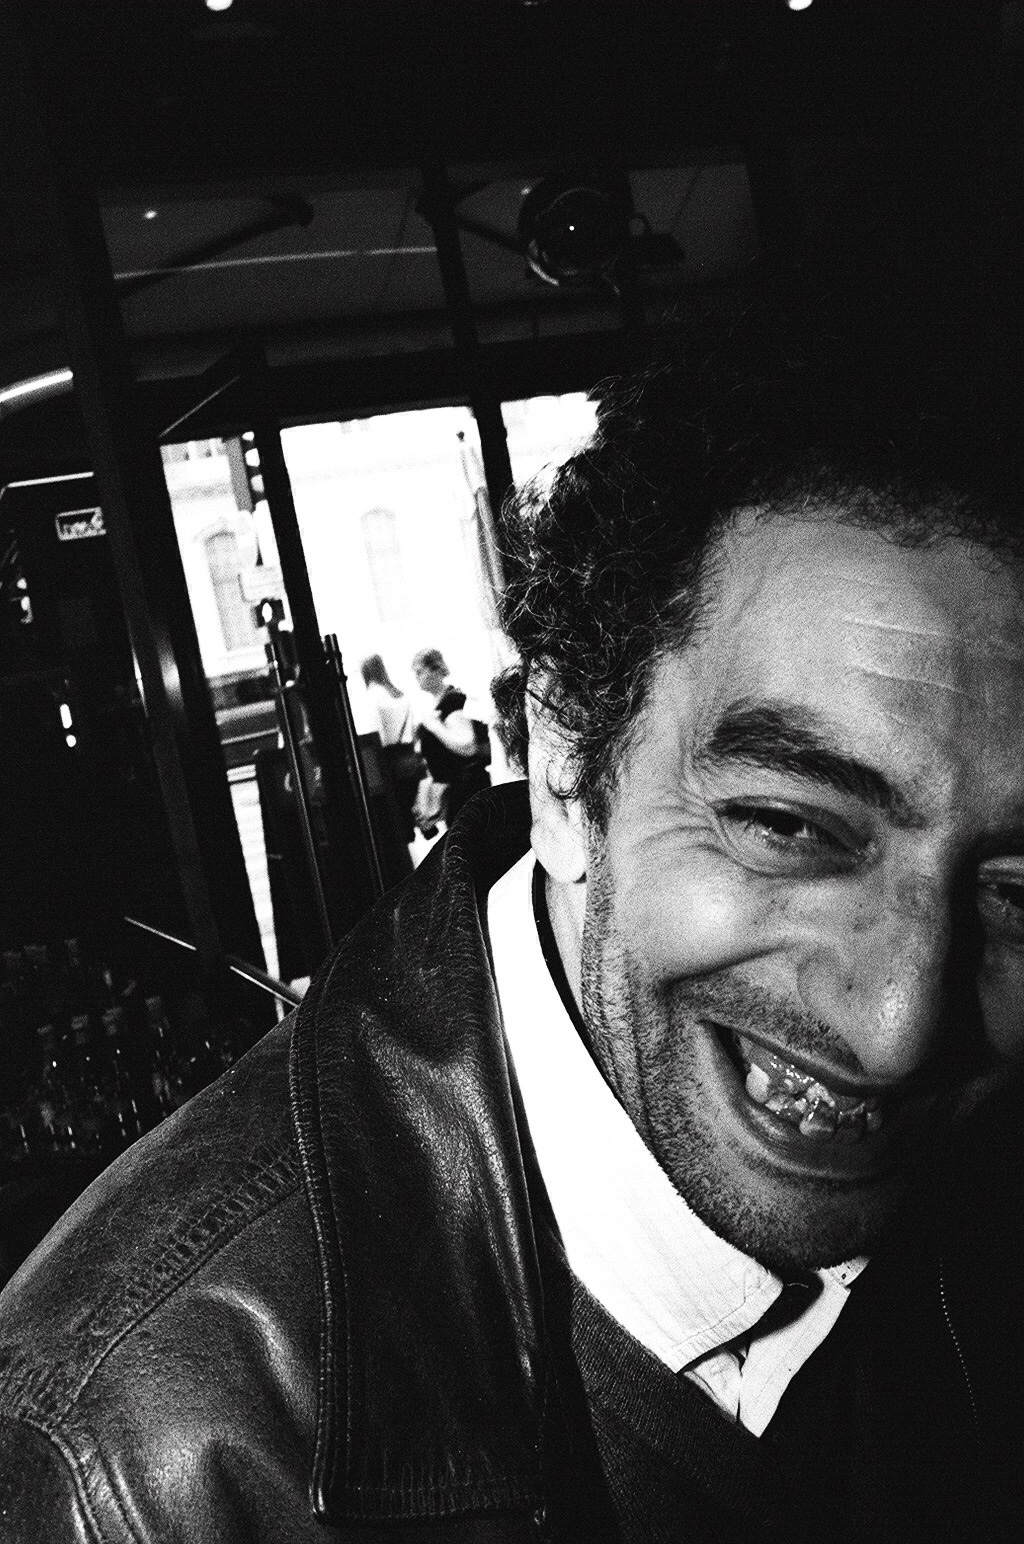 Flash photo I shot while chatting up a gentleman in Paris, catching his laughing gesture.